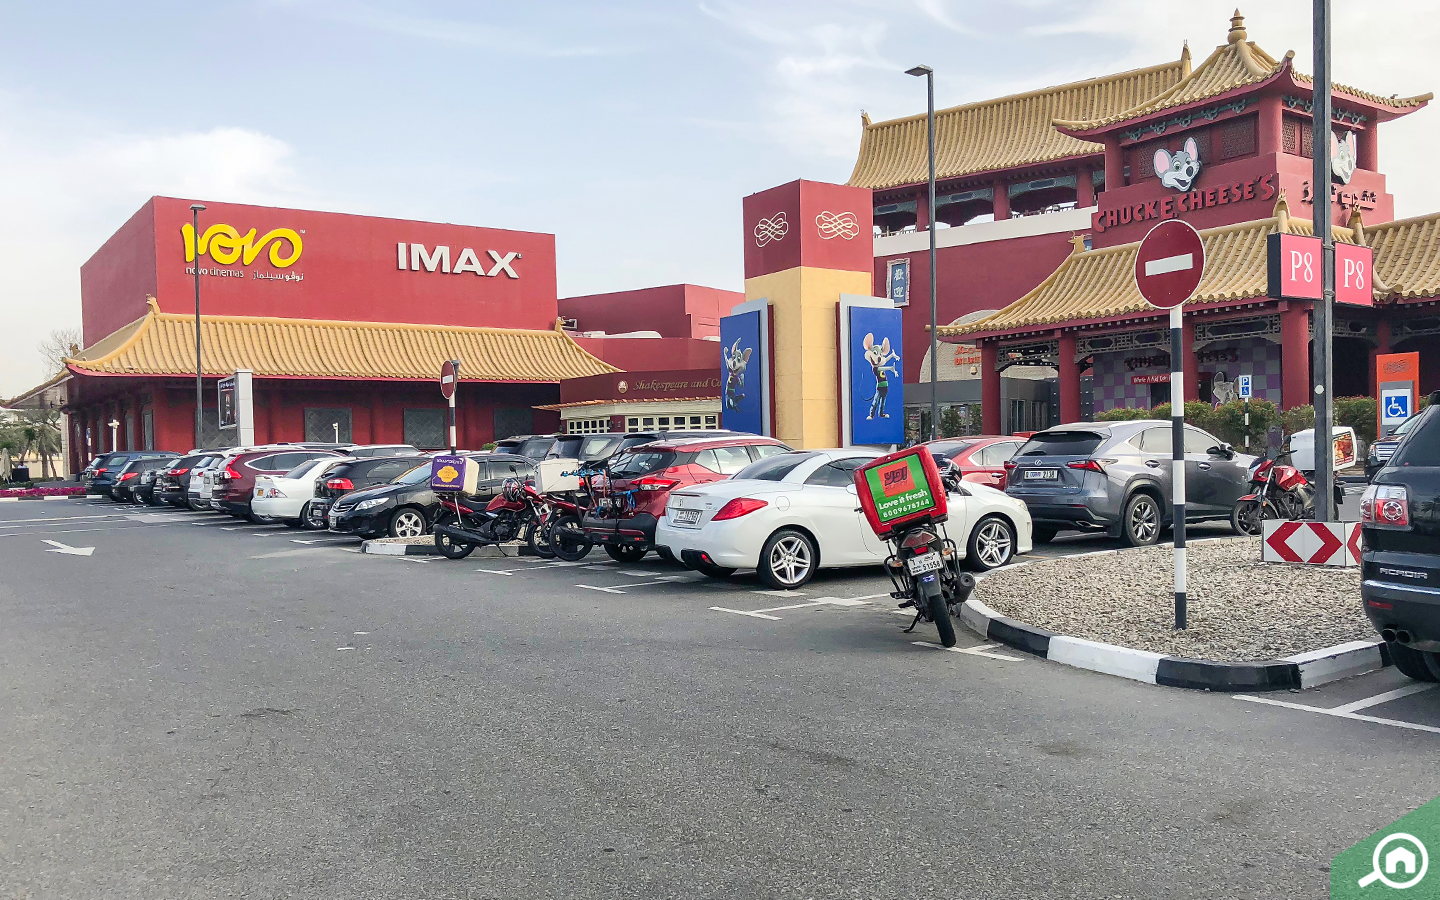 Resaturants and cinemas in Ibn Battuta Mall near Discovery Gardens